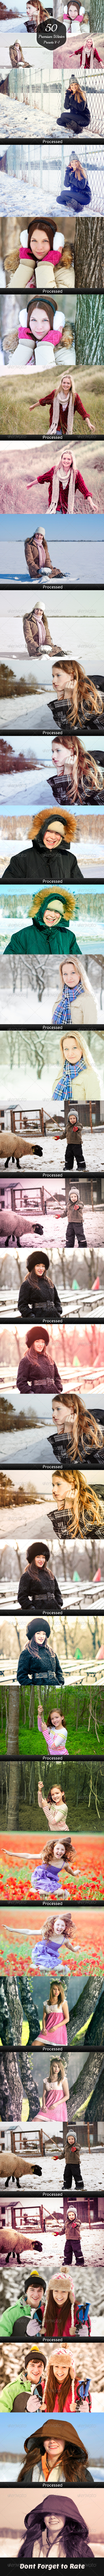 GraphicRiver 50 Premium Winter Lightroom Presets V1 8204566